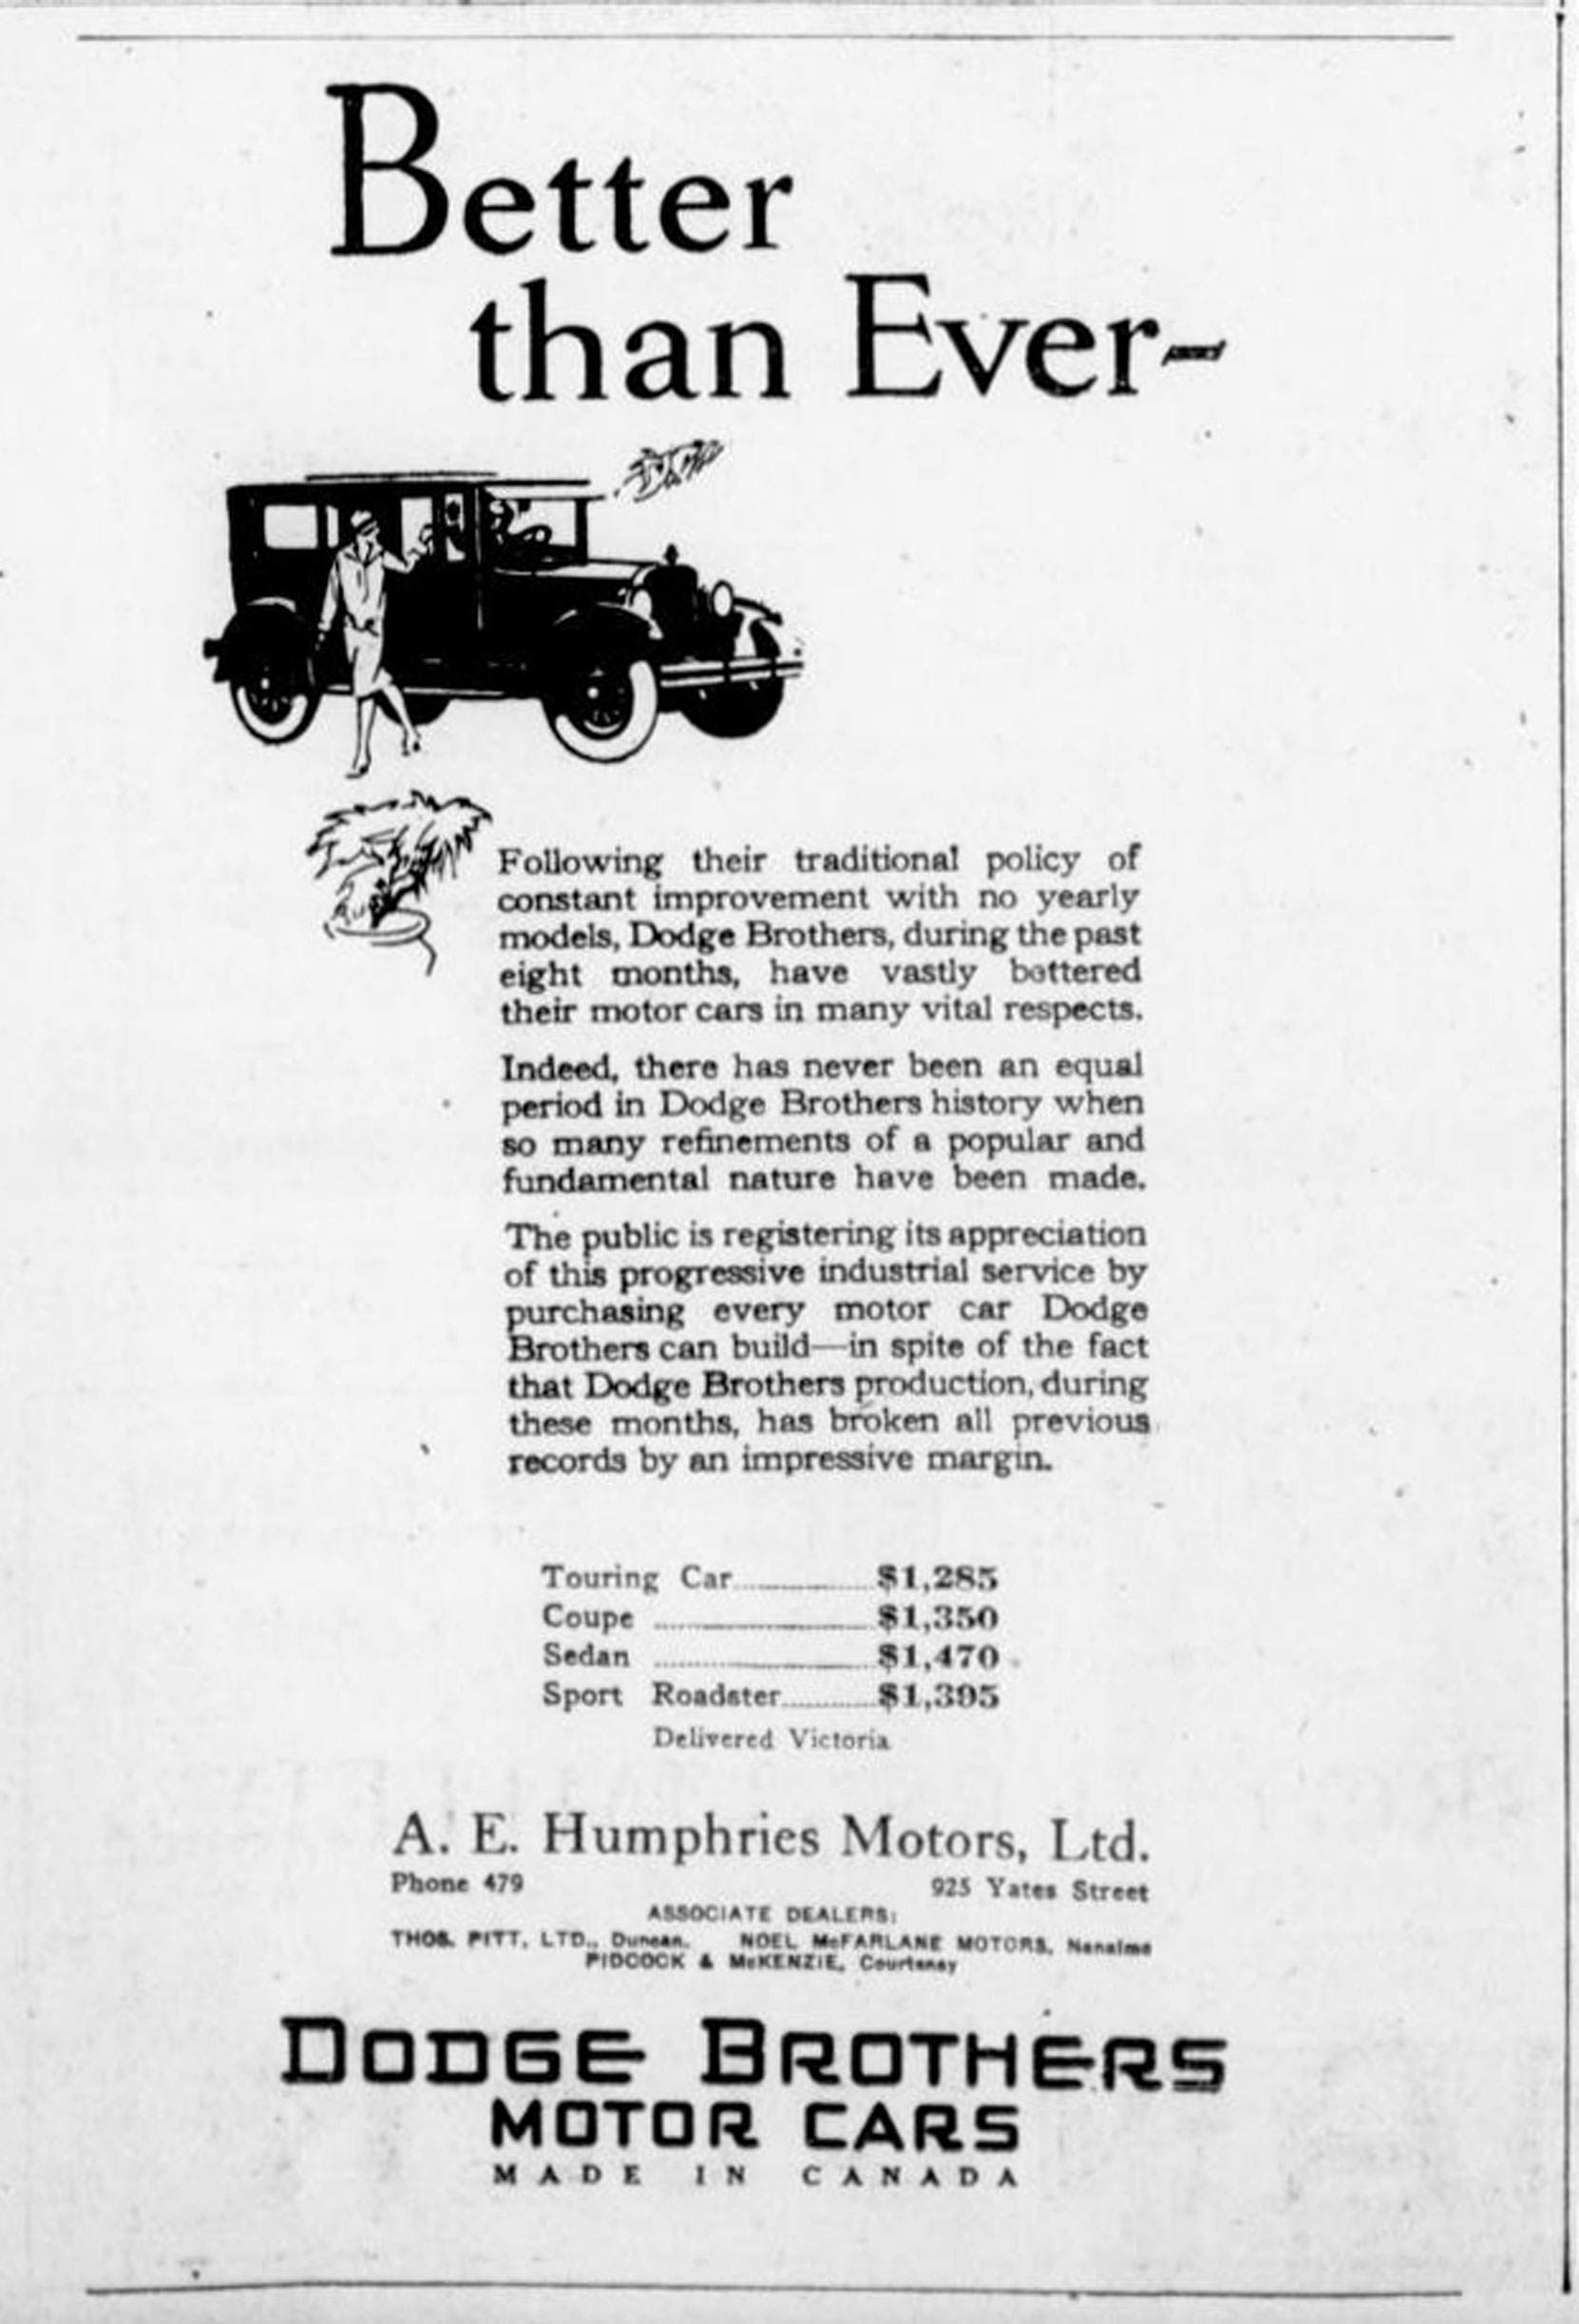 1926 advertisement for Dodge Brother Motor Cars and the Dodge dealer in Duncan, Thomas Pitt (Duncan Sightseeing collection),